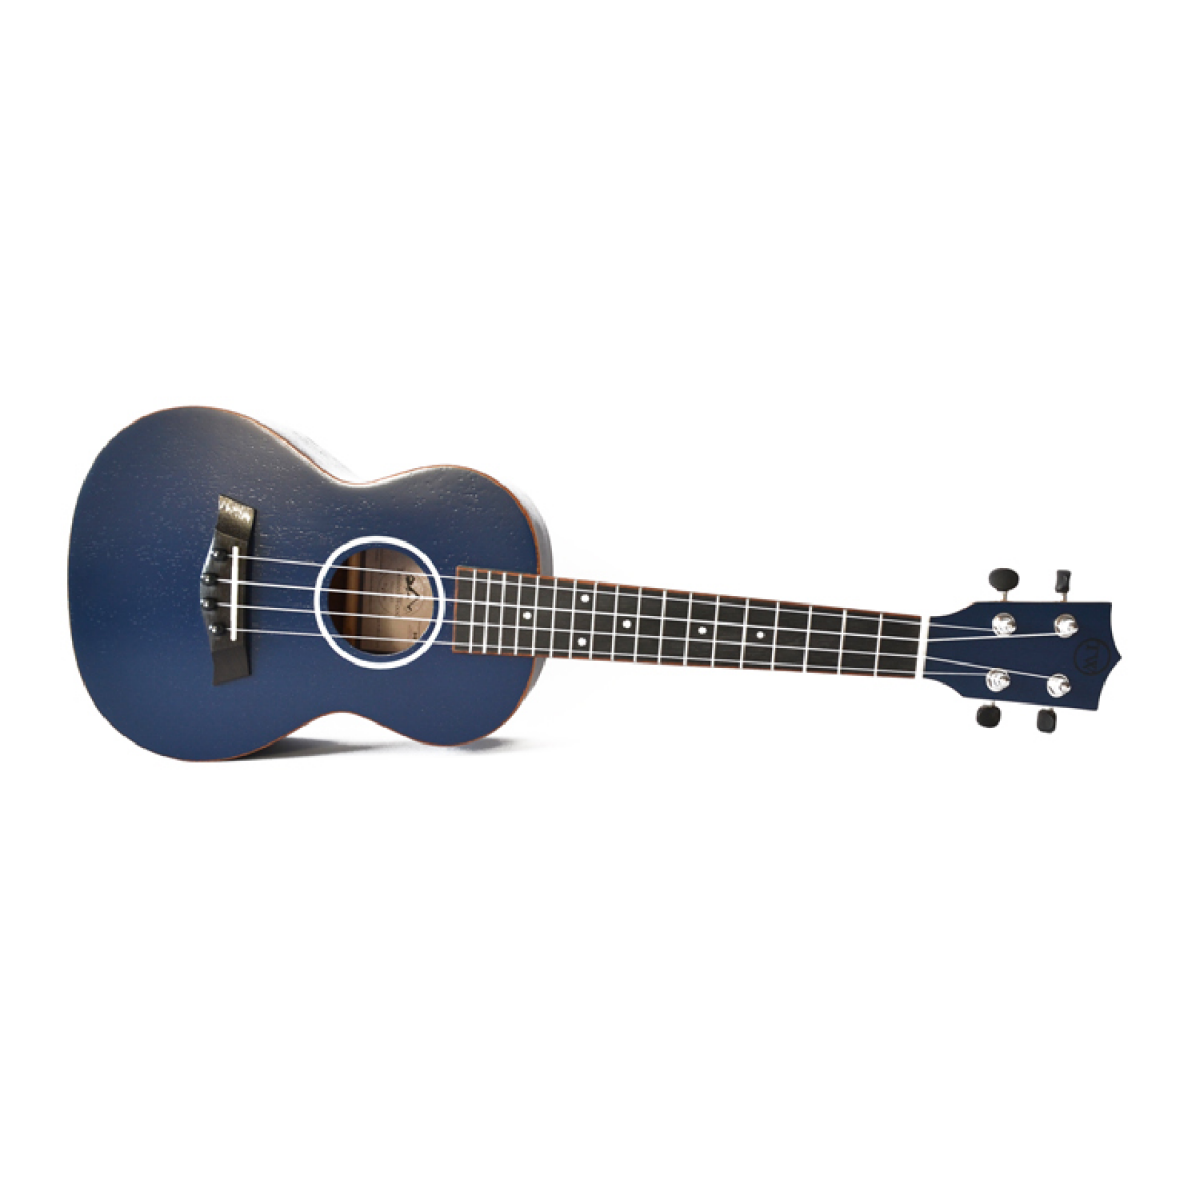 Twisted Wood Bluford Ukulele - BL150 down